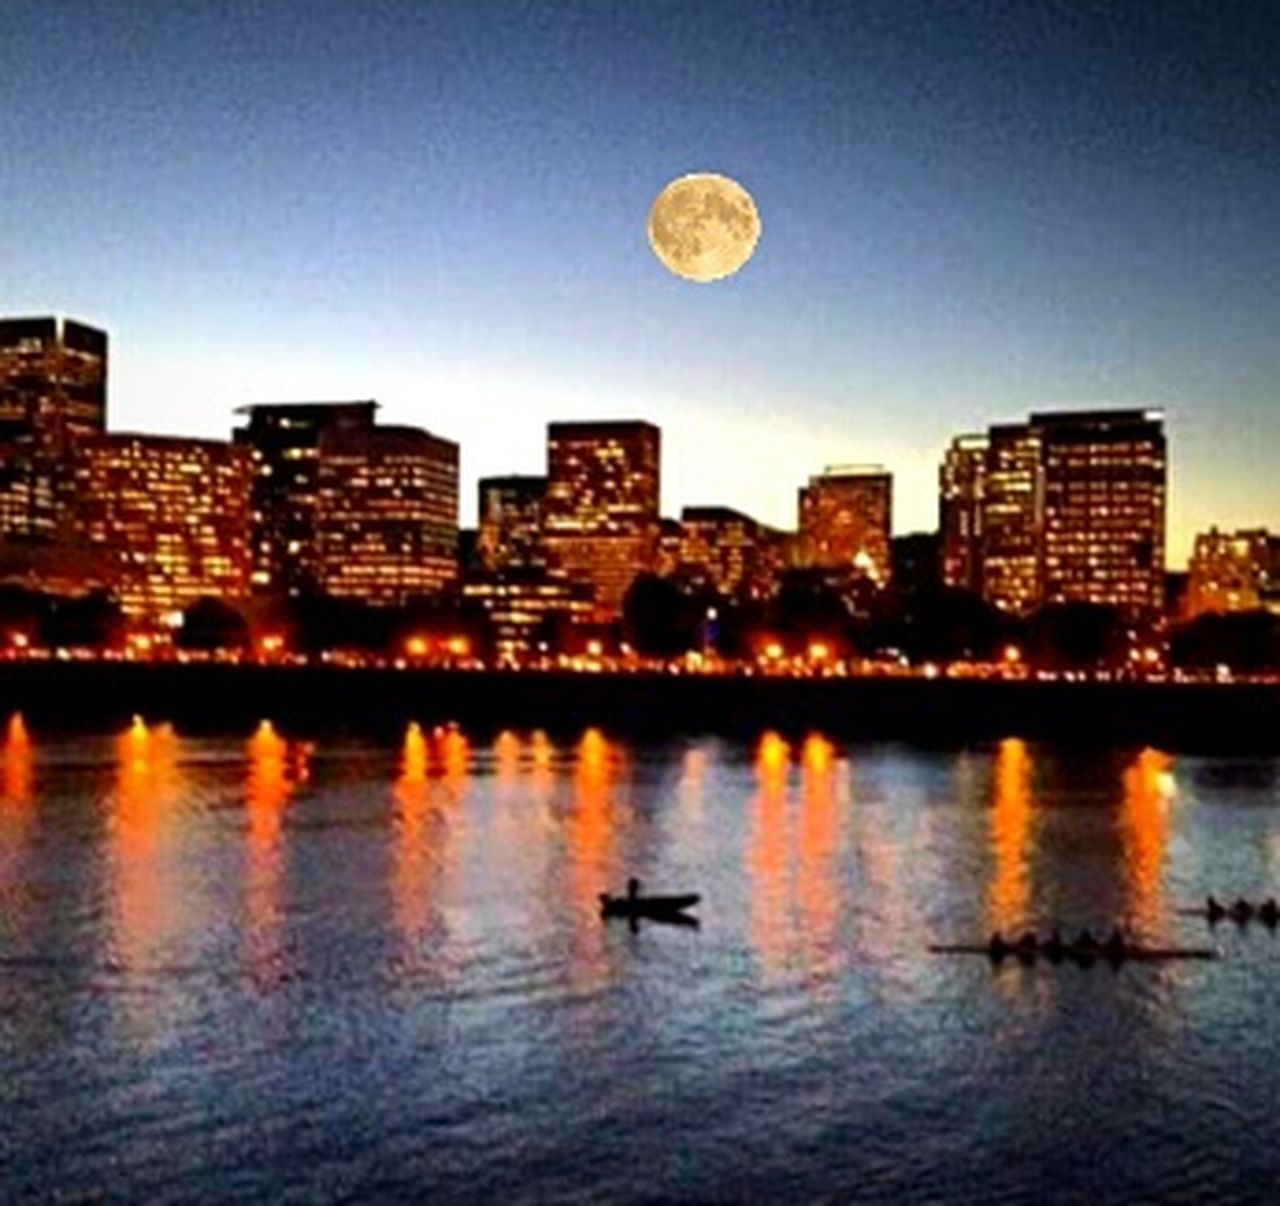 Moon Reflection Building Exterior City Skyscraper Architecture Cityscape Illuminated Urban Skyline Sunset Collection VariousColors Getting Inspired Showcase JuneCity Life Sunset Cityscape Cellphone Photography Creative Photography Eyeem Market Getty Images Portland Oregon Ptown Represent!!! Capture The Moment. Built Structure Glowing